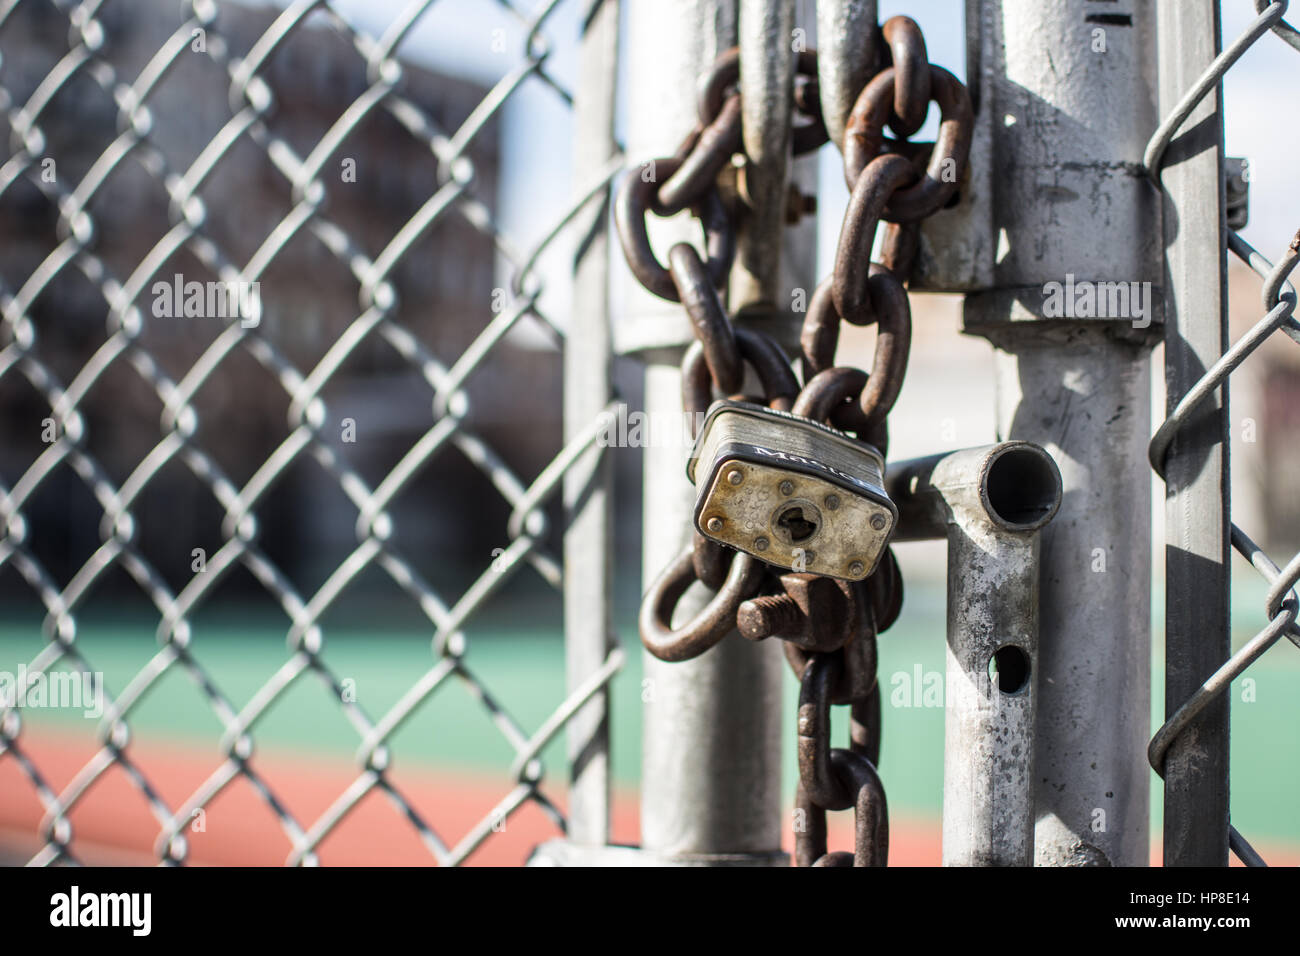 Locked gate with padlock and chain - chain link fence background taken in Inwood NYC Manhattan. - Stock Image